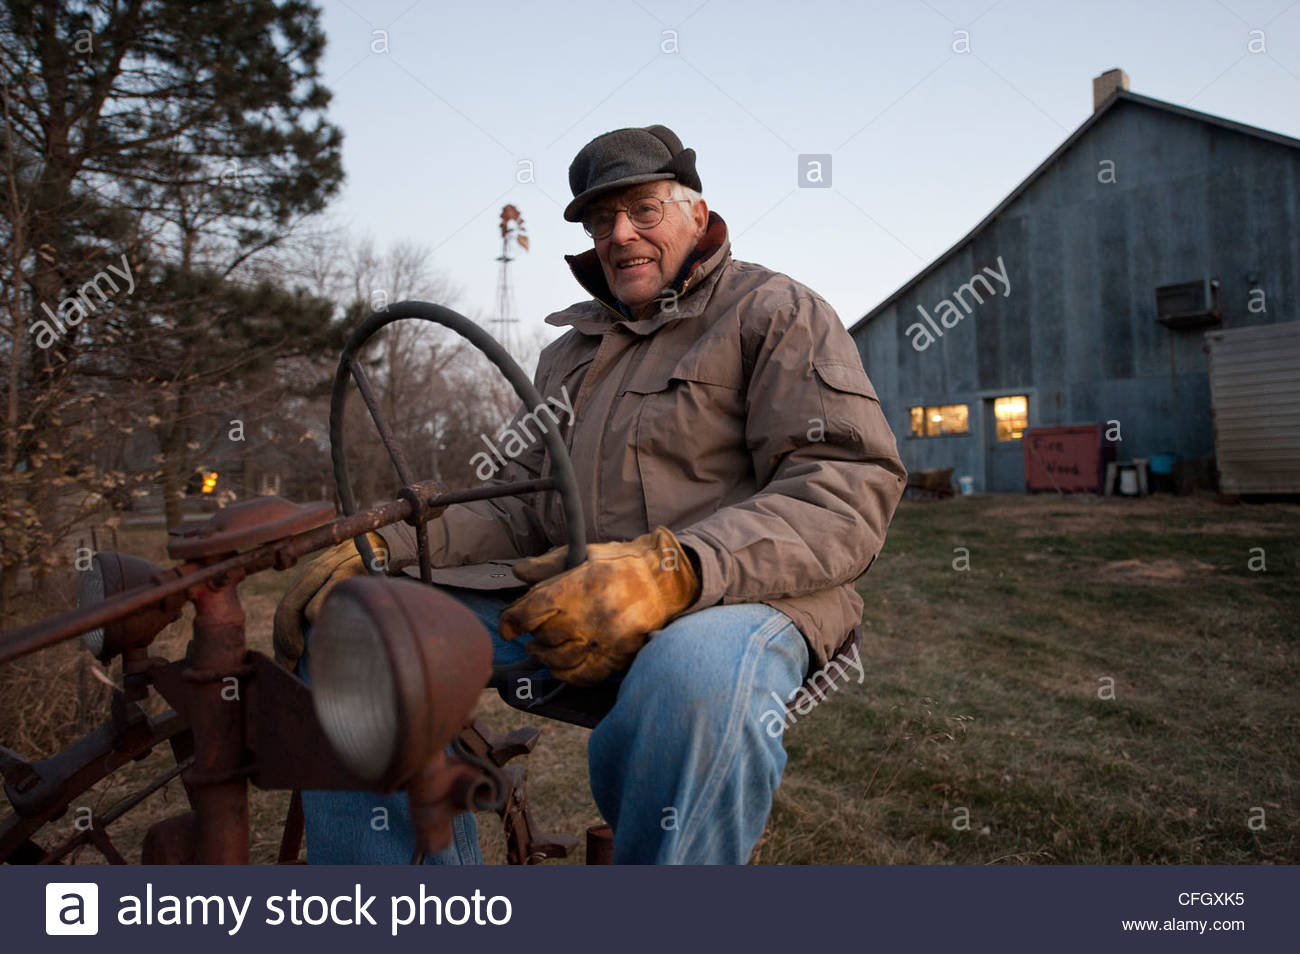 An elderly man sits on an antique tractor on a farm in Cortland, NE. - Stock Image